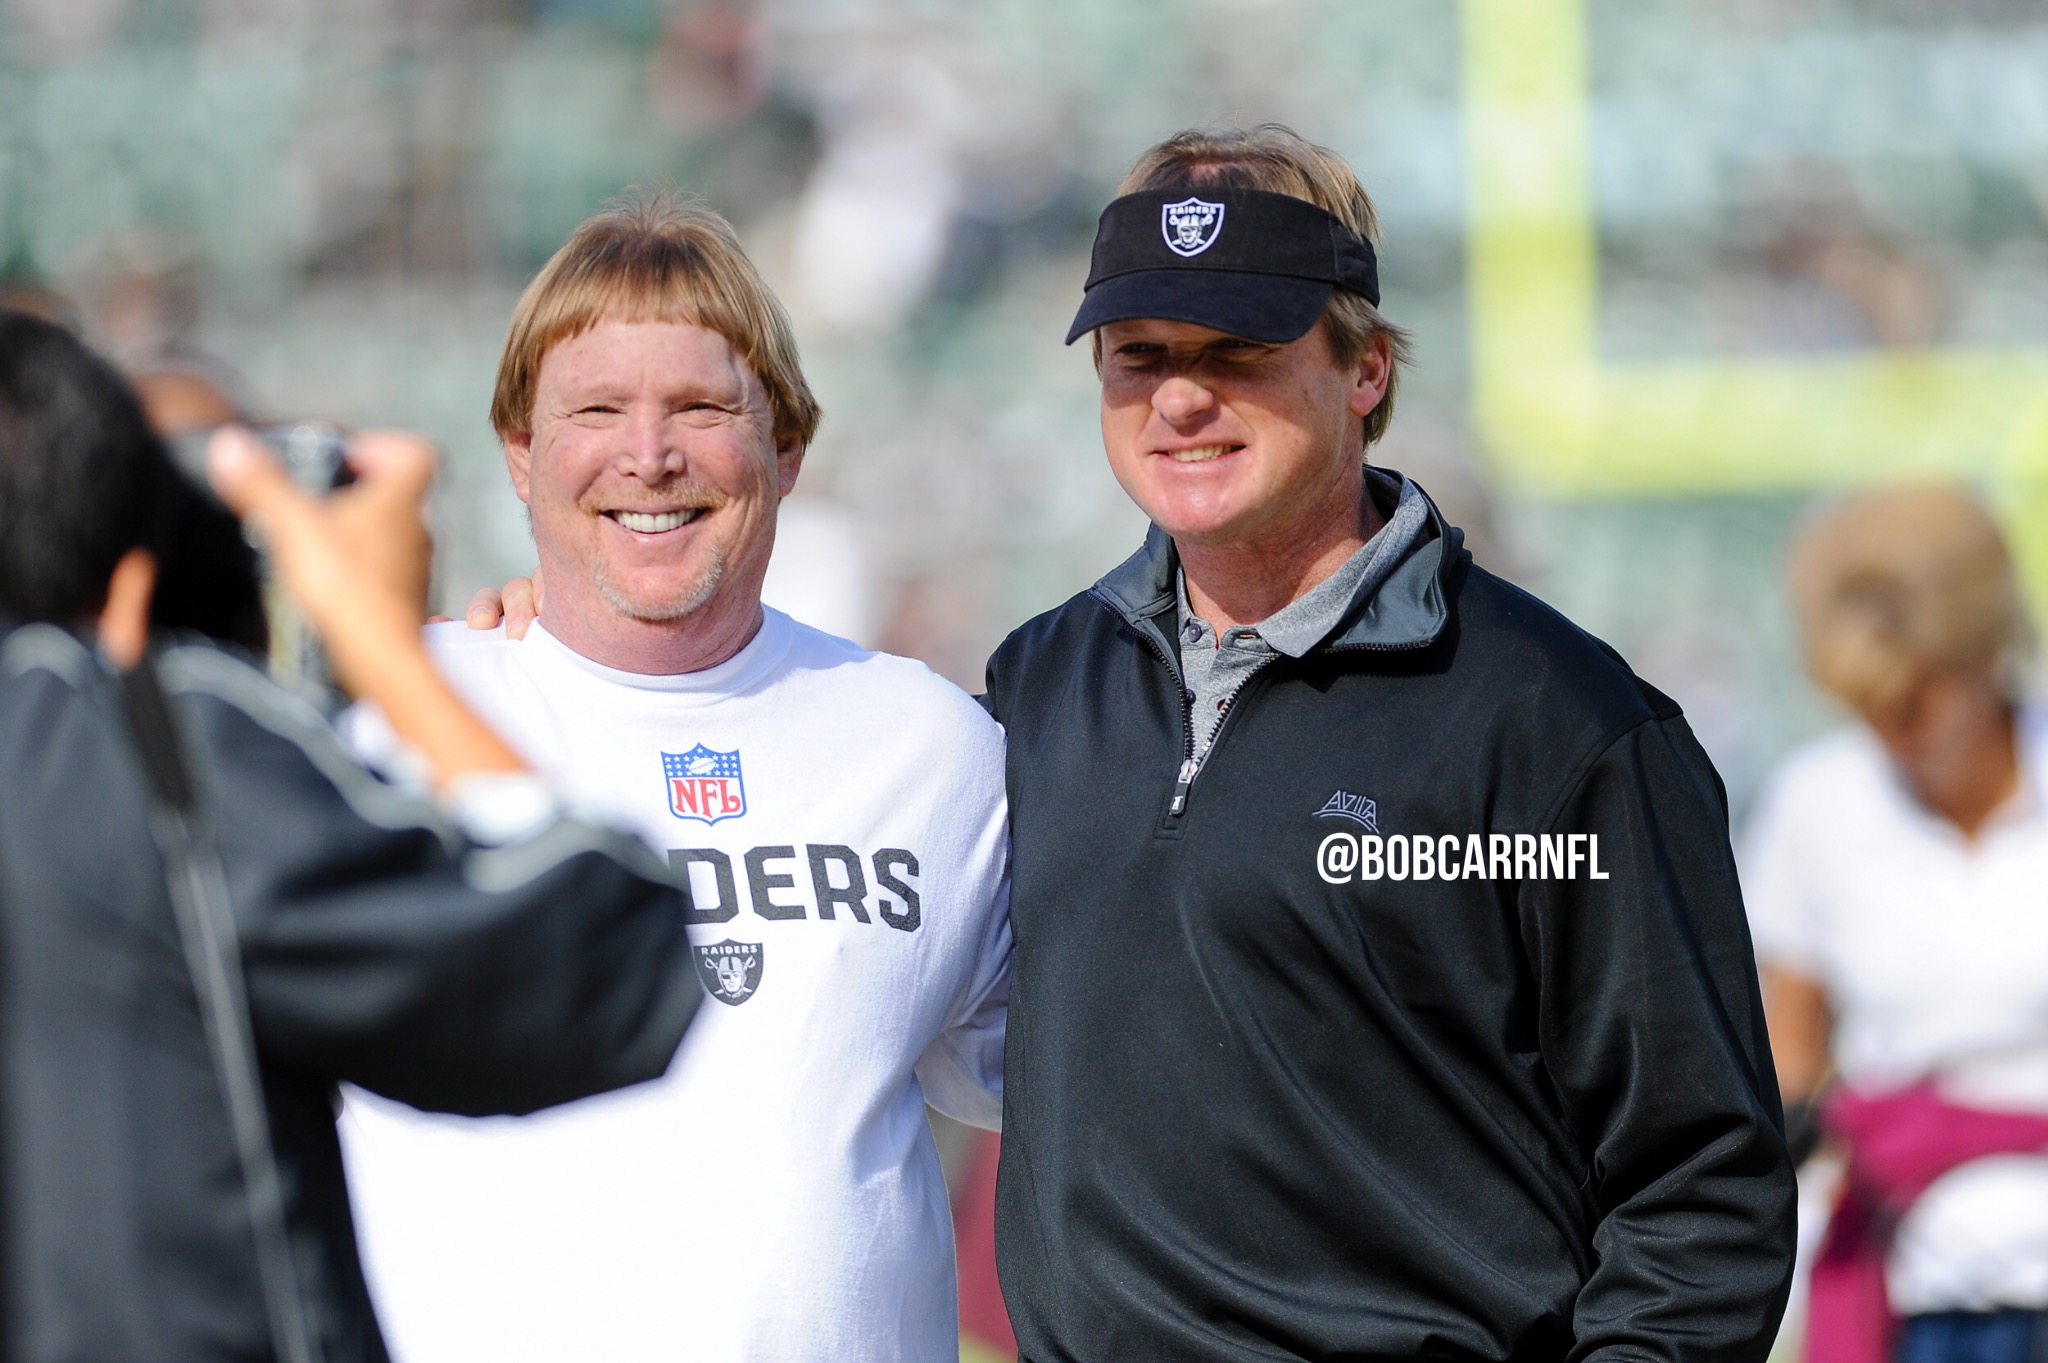 Raiders Research Project: Revisiting the infamous Jon Gruden trade